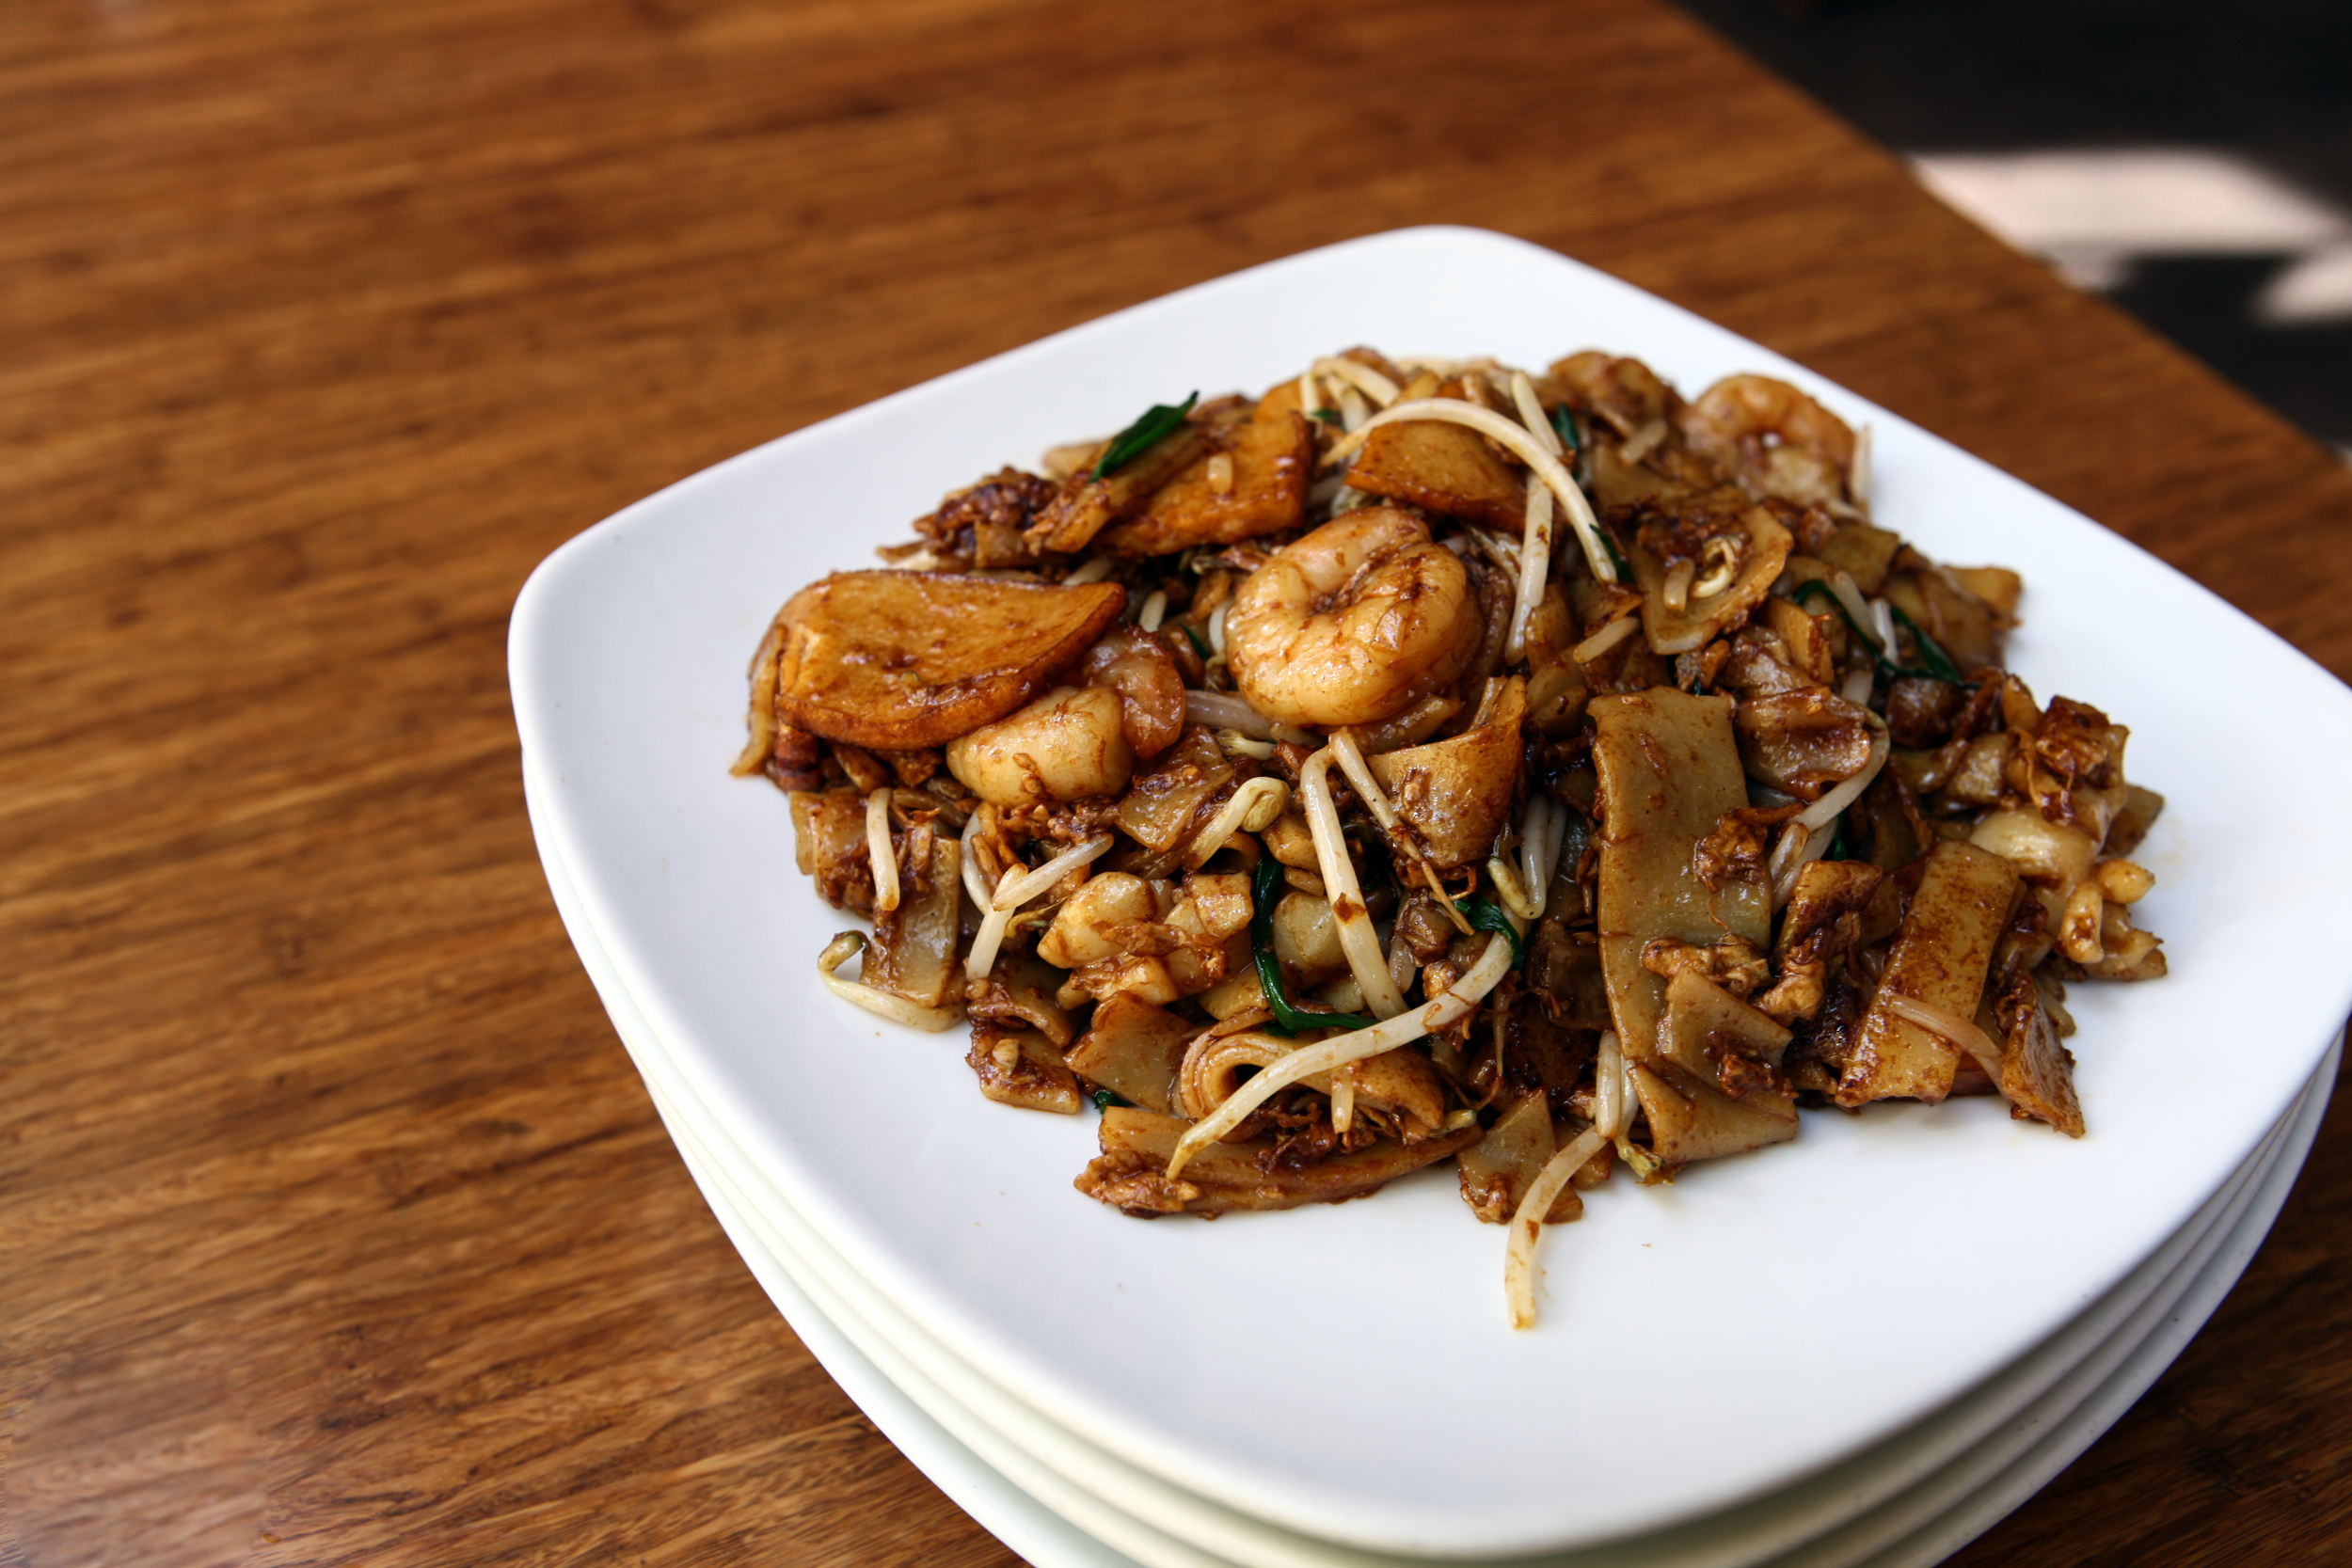 Char Kuey Teow -  Fried flat rice noodles in sweet chili and soy sauce, egg, bean sprout, shrimp, fish cake, and squid.